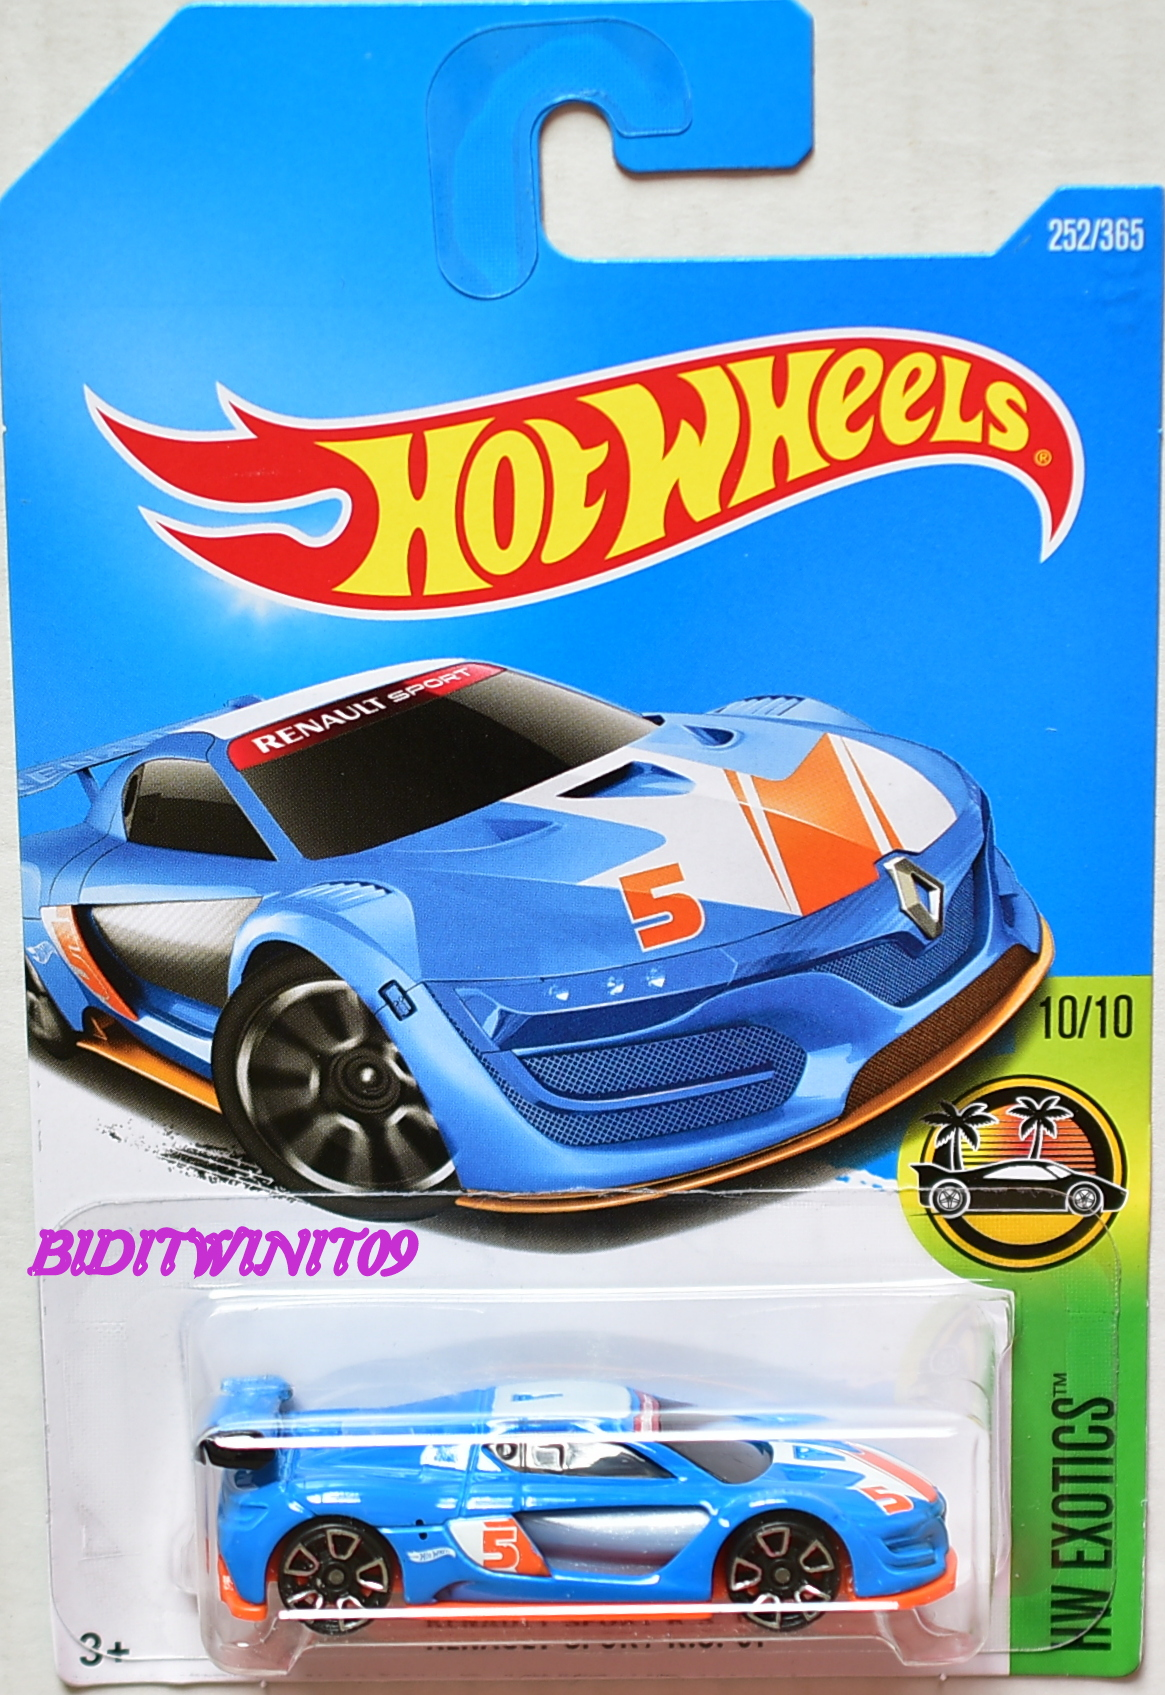 HOT WHEELS 2017 HW EXOTICS RENAULT SPORT R.S. 01 BLUE